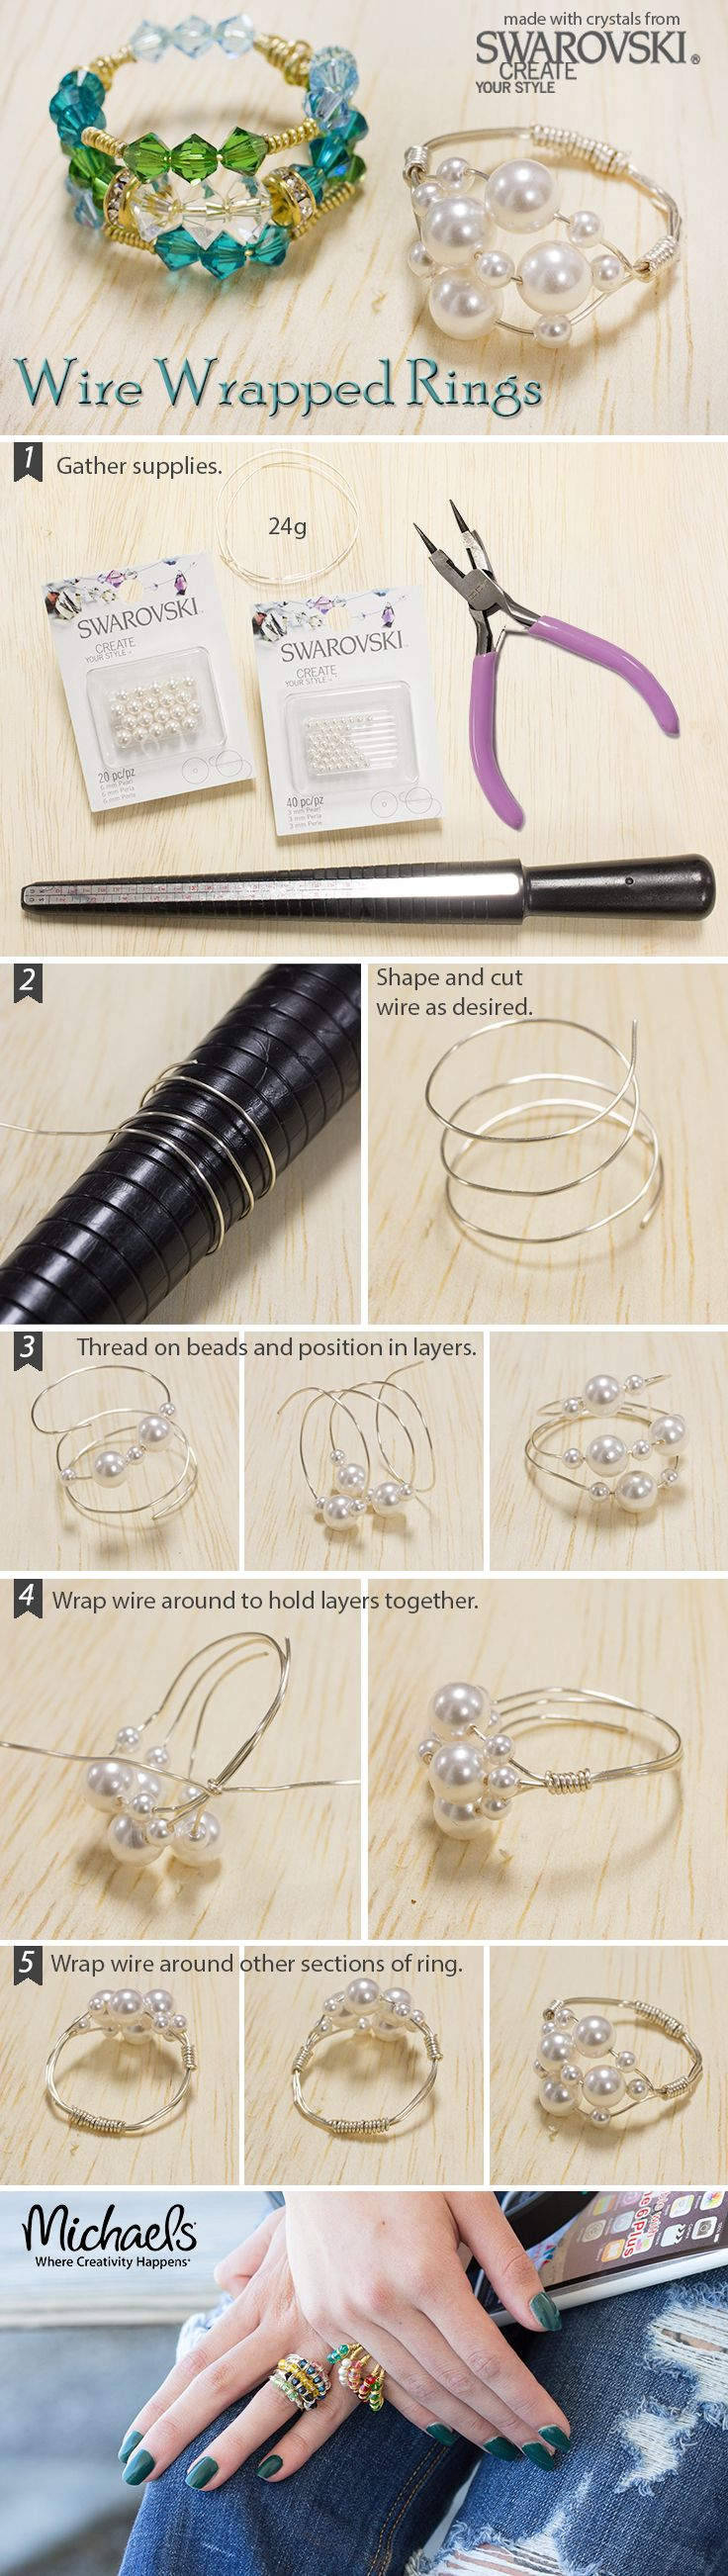 What You Should Look For When Purchasing Jewelry | Wire wrapping ...